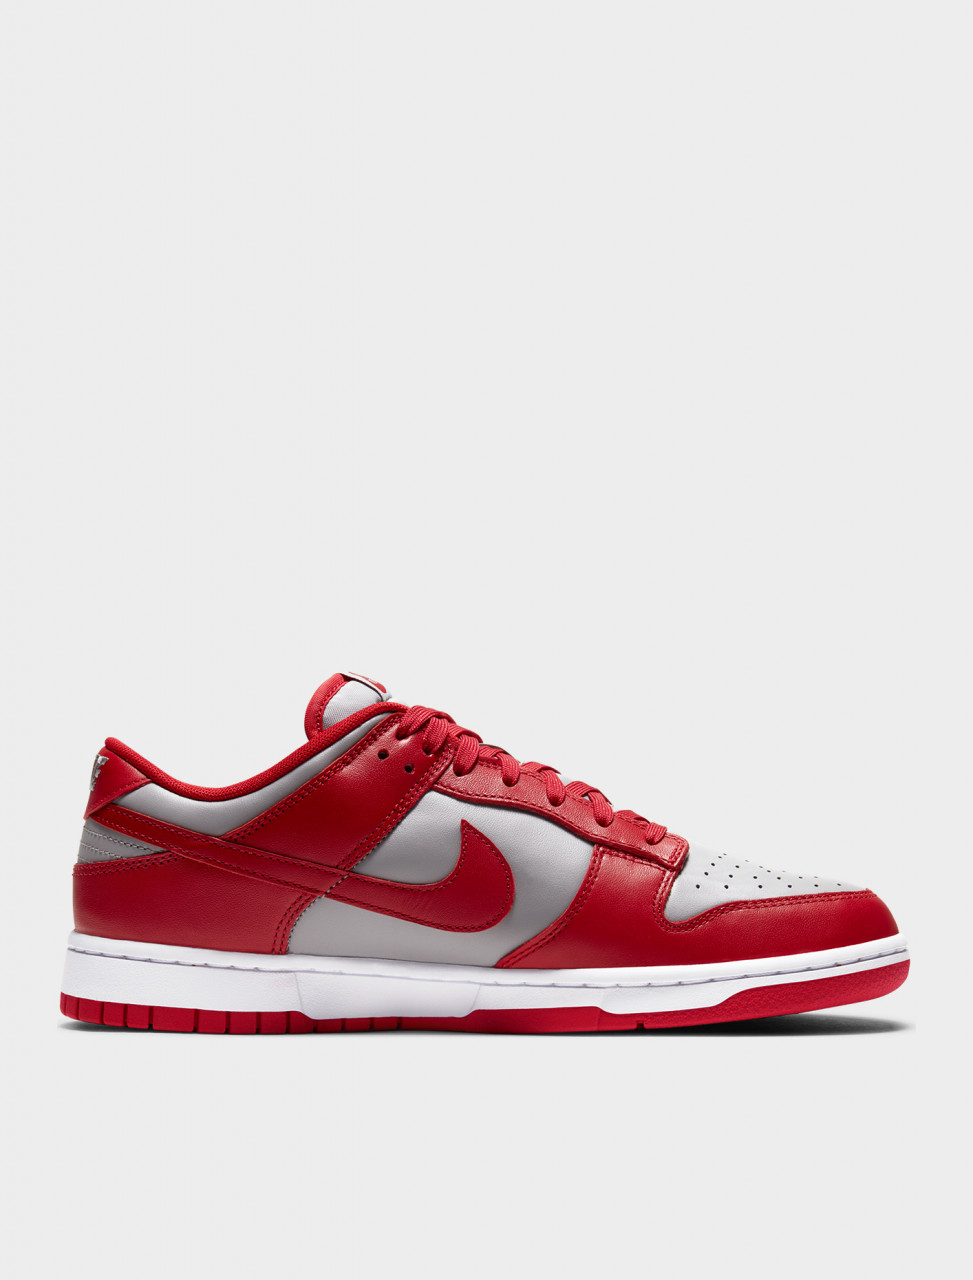 DD1391-002 Dunk Low Grey Red